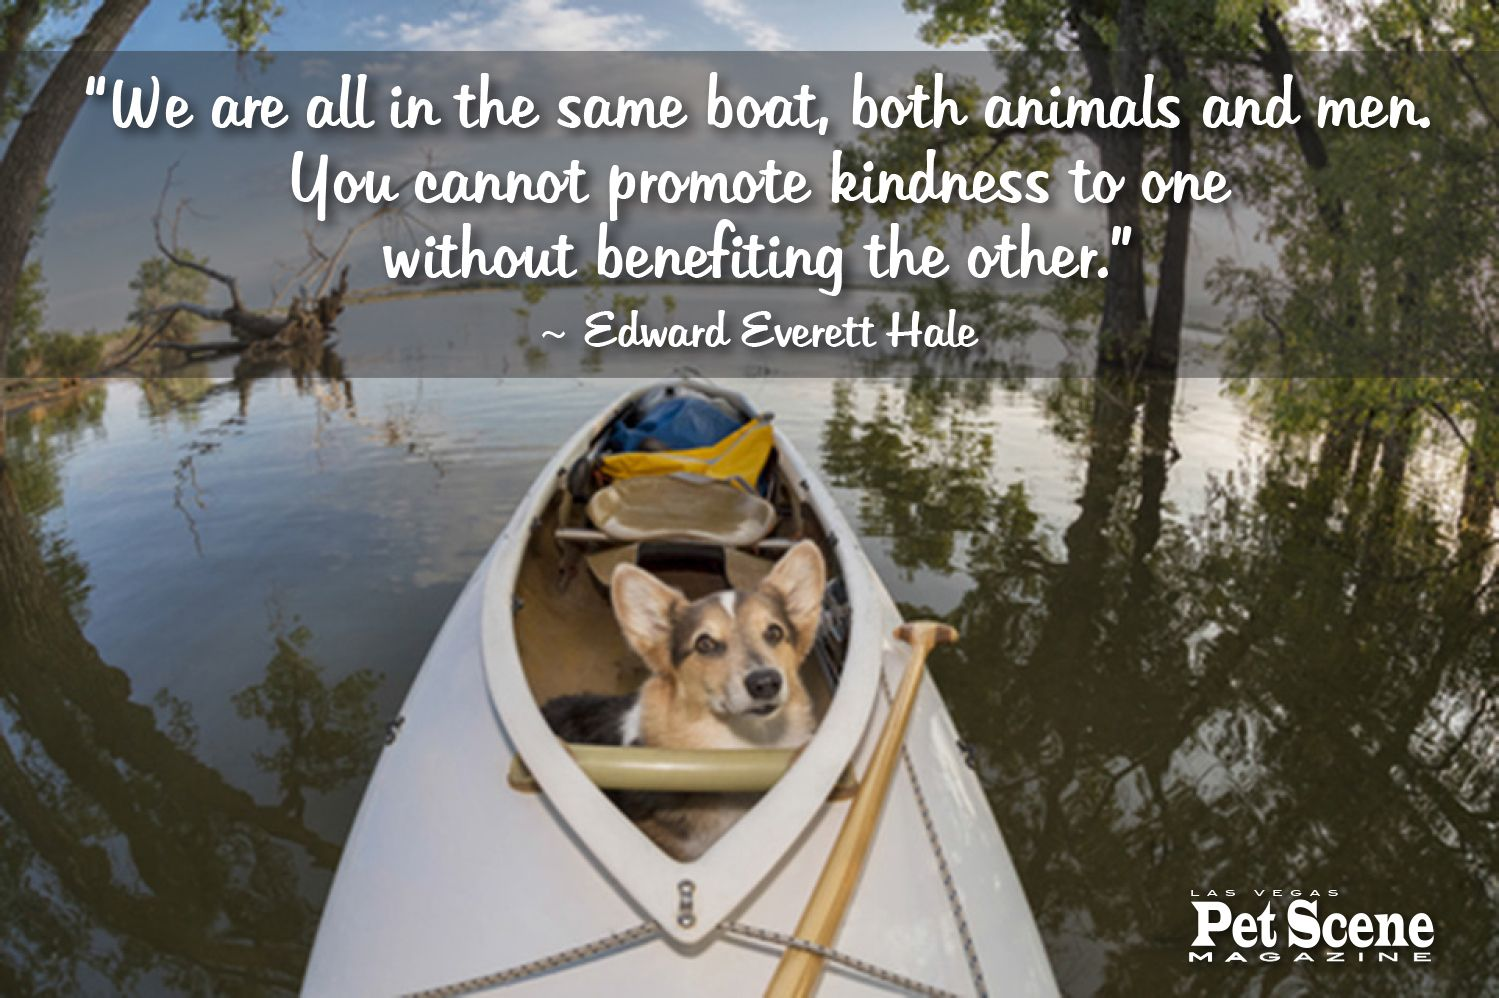 Mutual kindness is beneficial inspirational pets